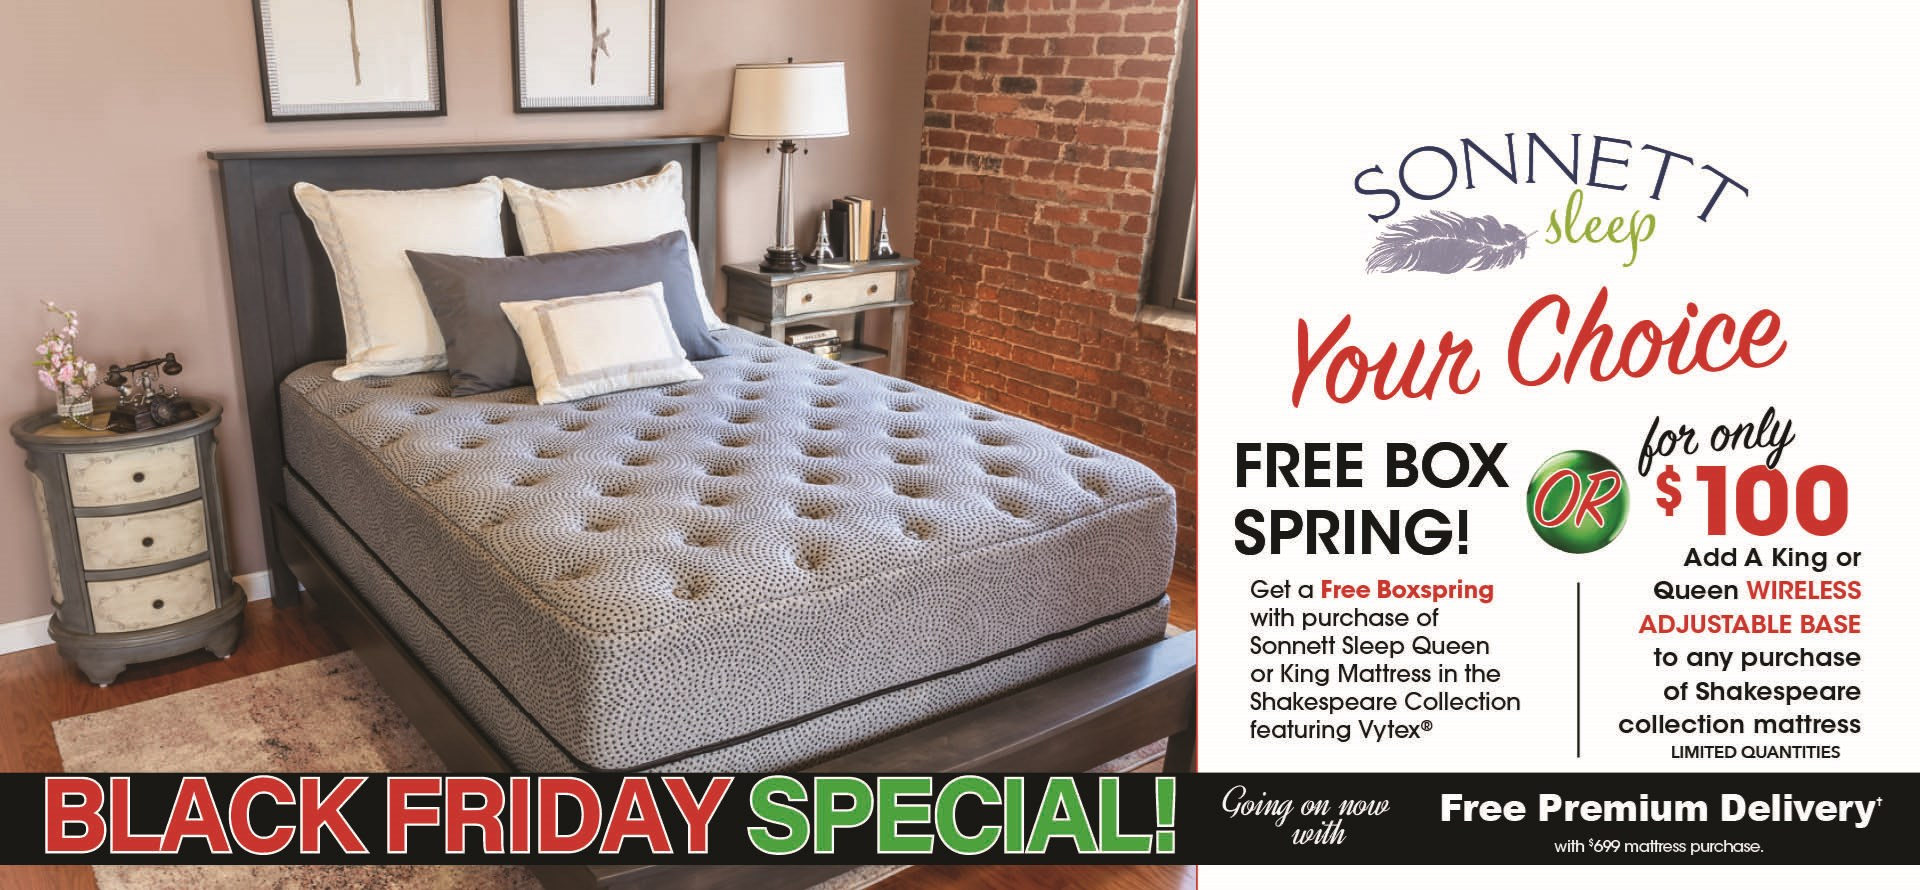 Black Friday Free Boxspring on Sonnett Shakespeare Collection Mattresses